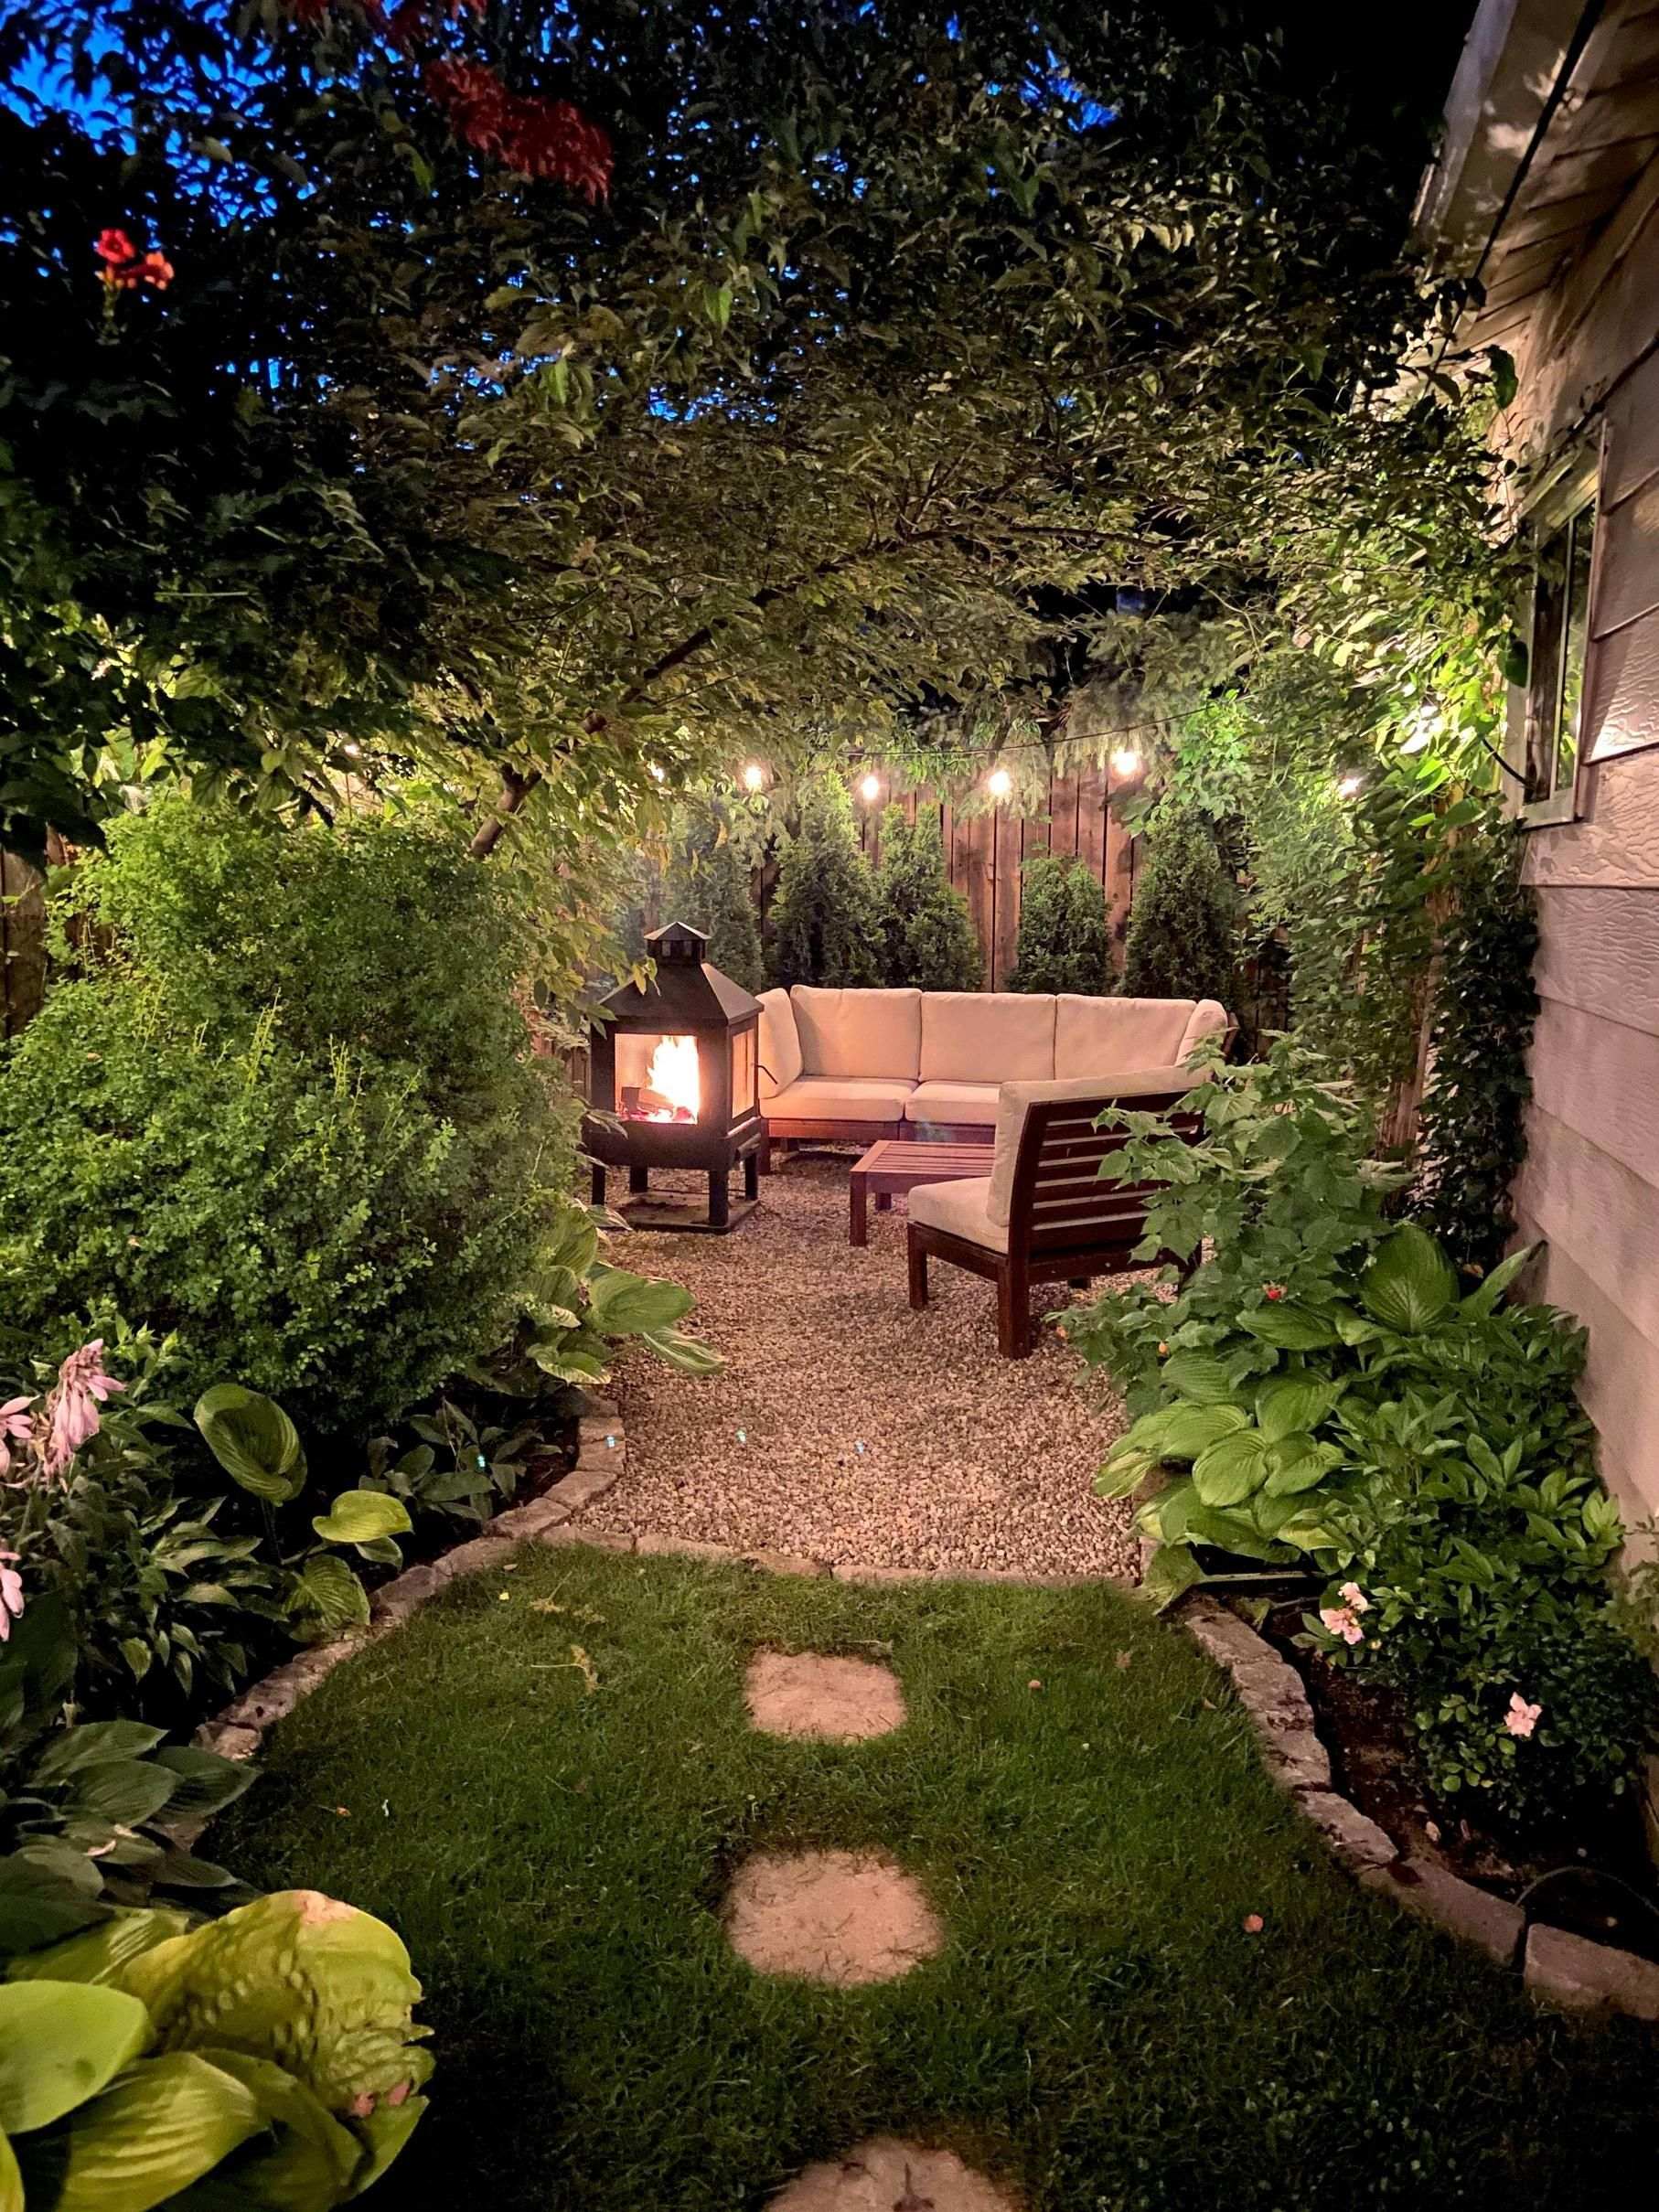 Our Backyard Urban Oasis This Was Just A Pile Of Dirt When We Moved Here 2 Years Ago Imgur In 2021 Backyard Backyard Landscaping Urban Backyard Backyard oasis ideas this old house